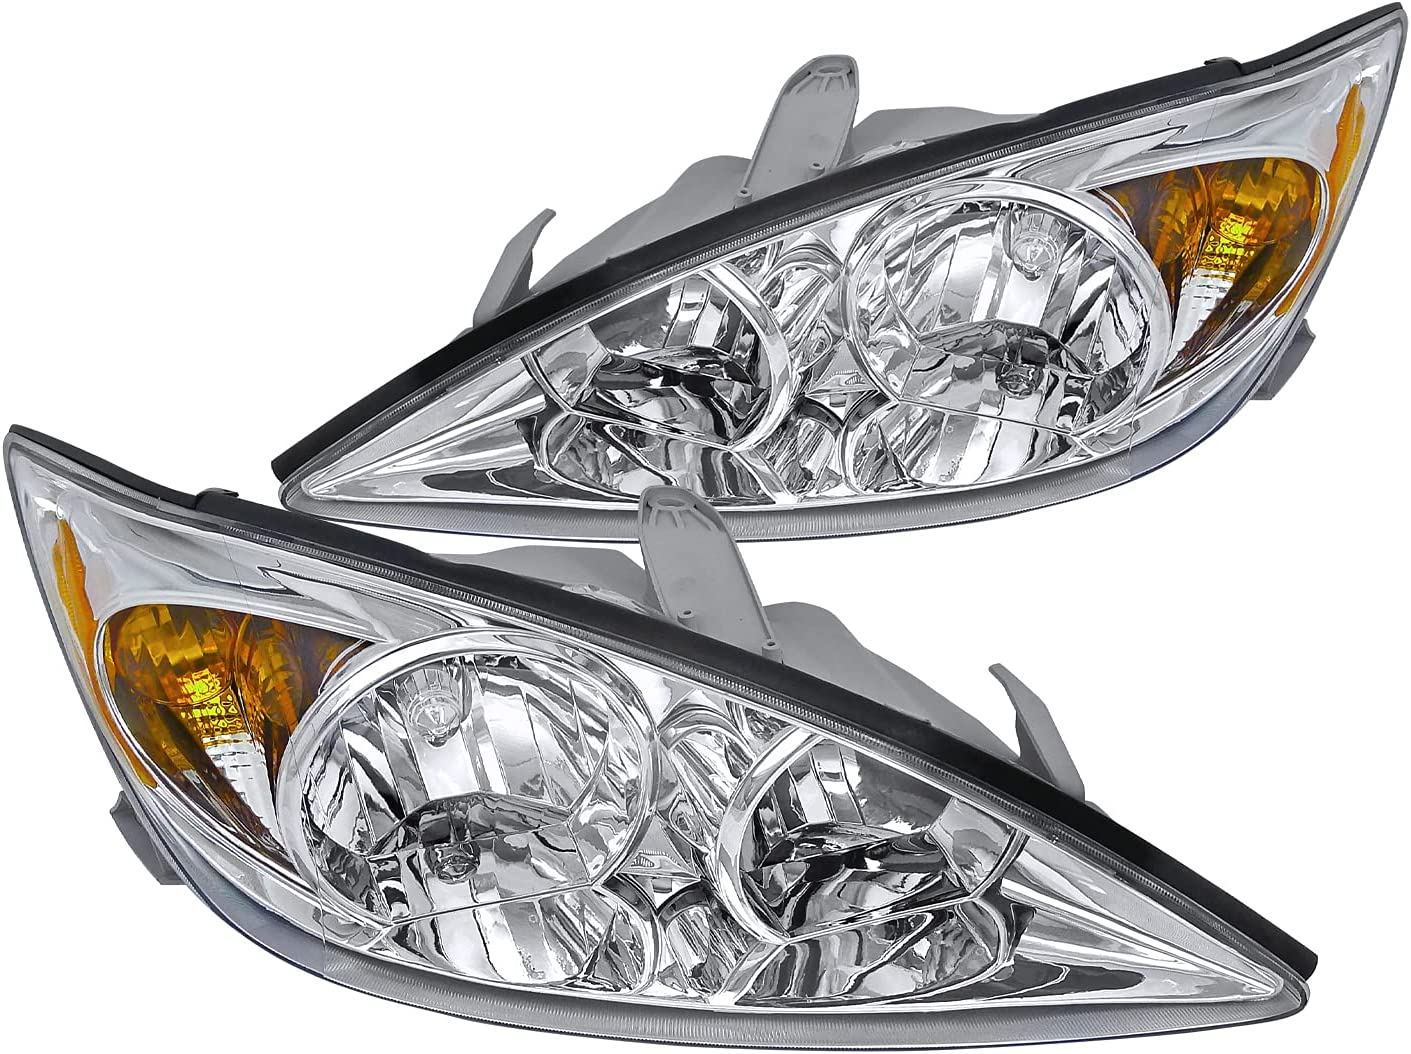 Ranking TOP6 Spec-D Latest item Tuning Chrome Housing Clear for 2002-2004 Headlights Lens